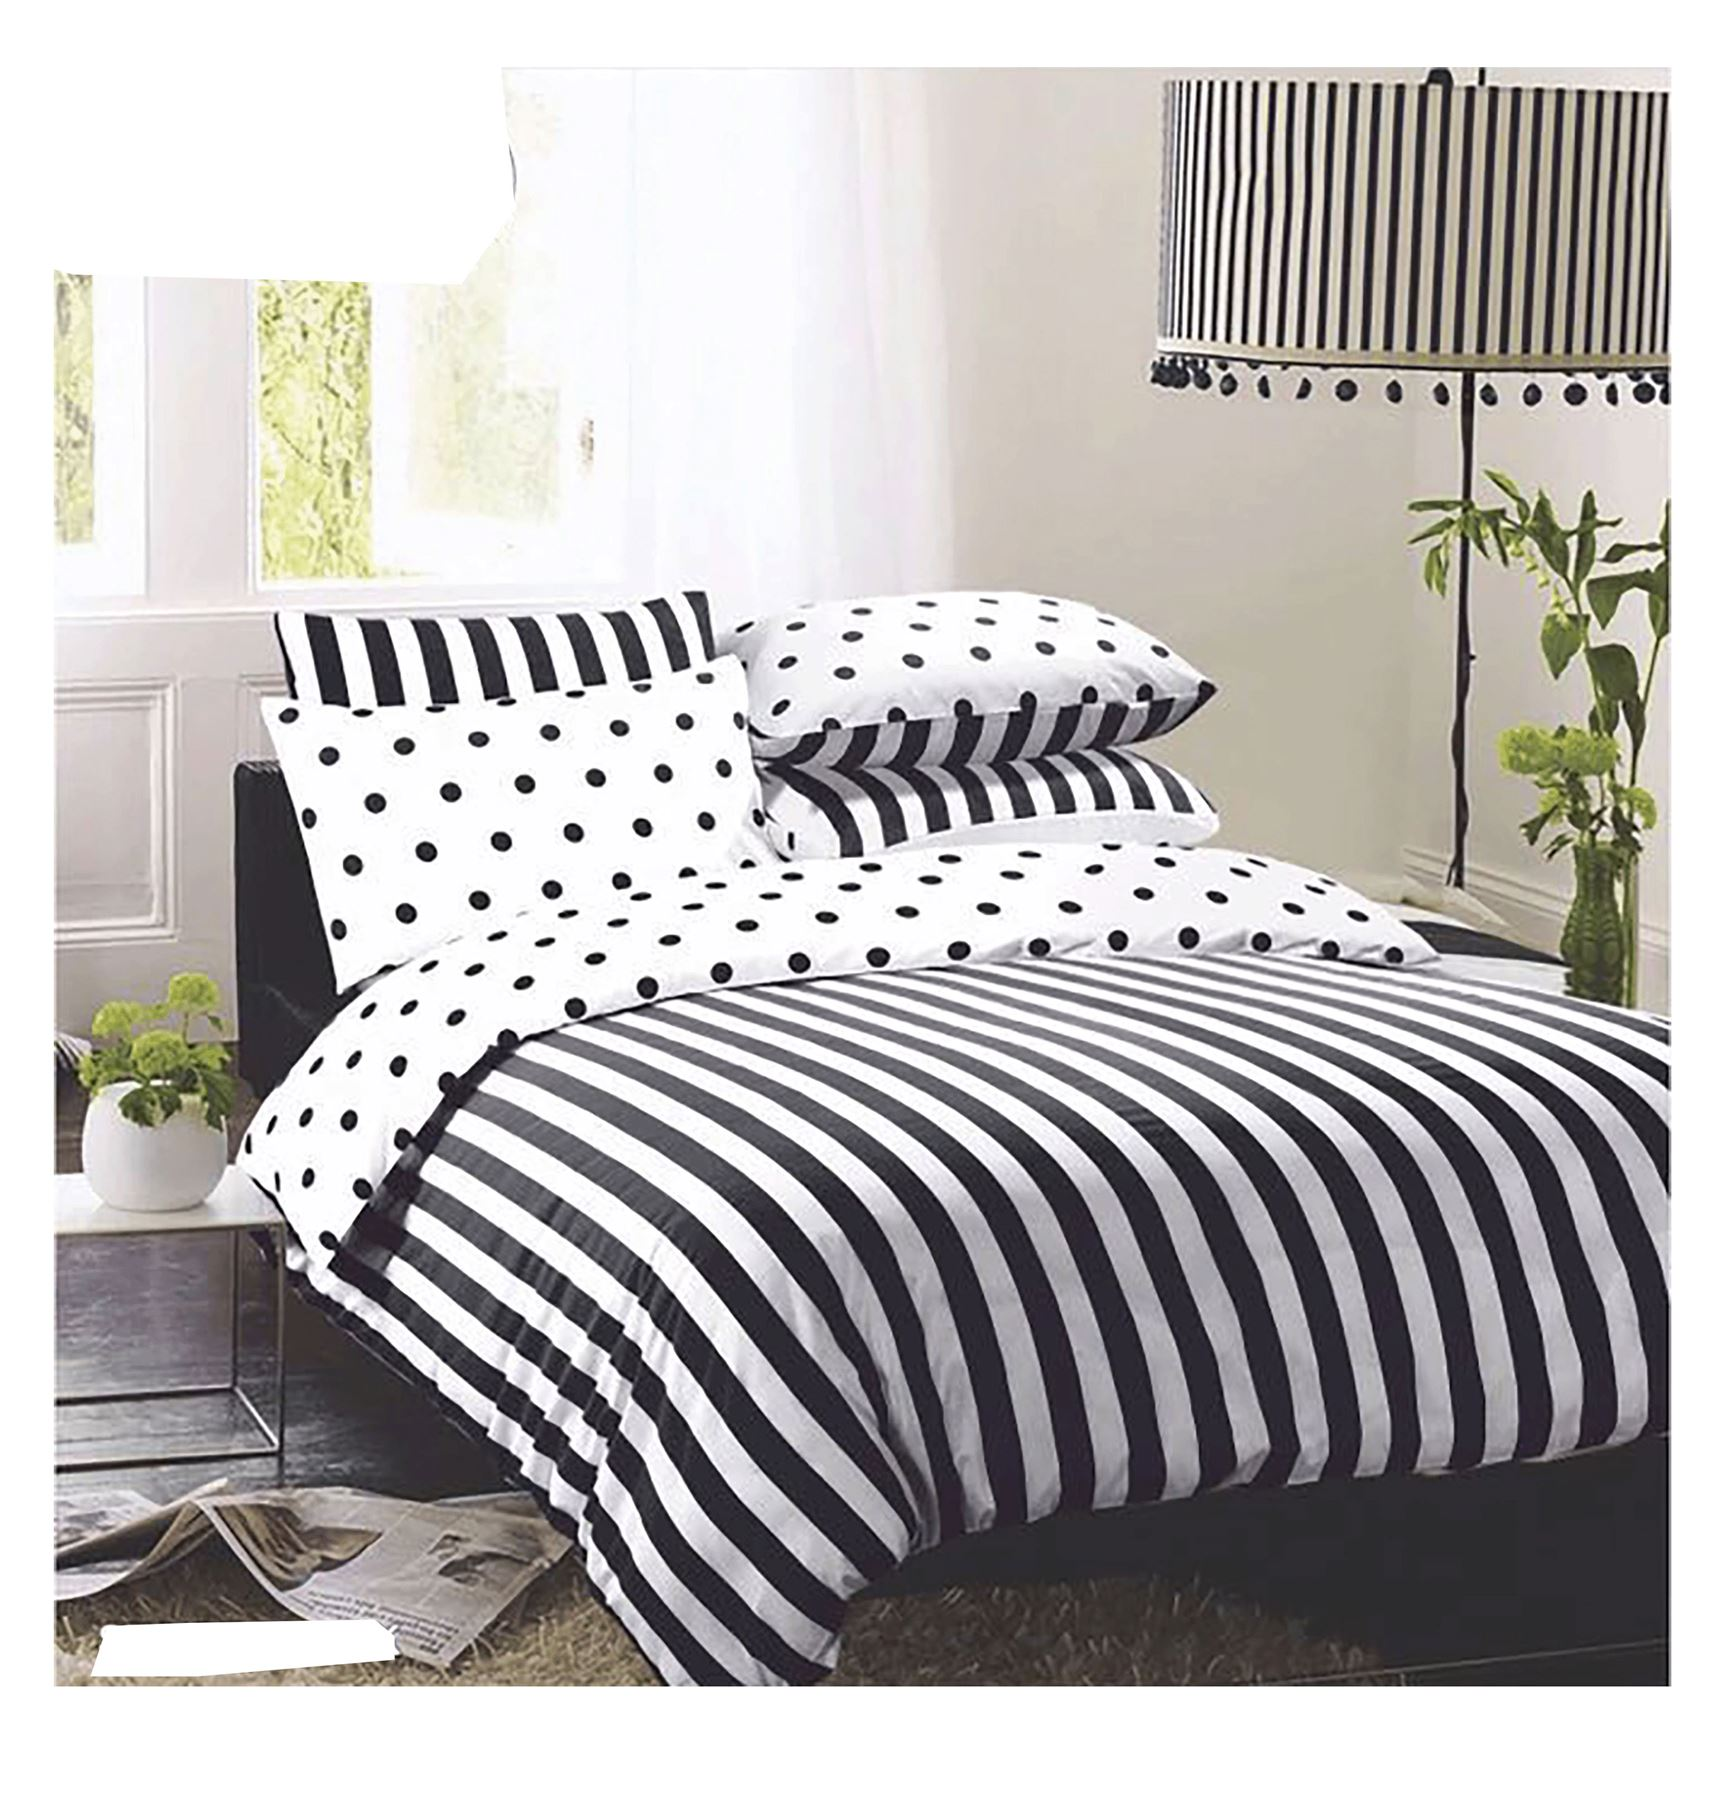 New Reversible Stripy And Spotty Duvet Quilt Cover With Pillow Case Bedding Set